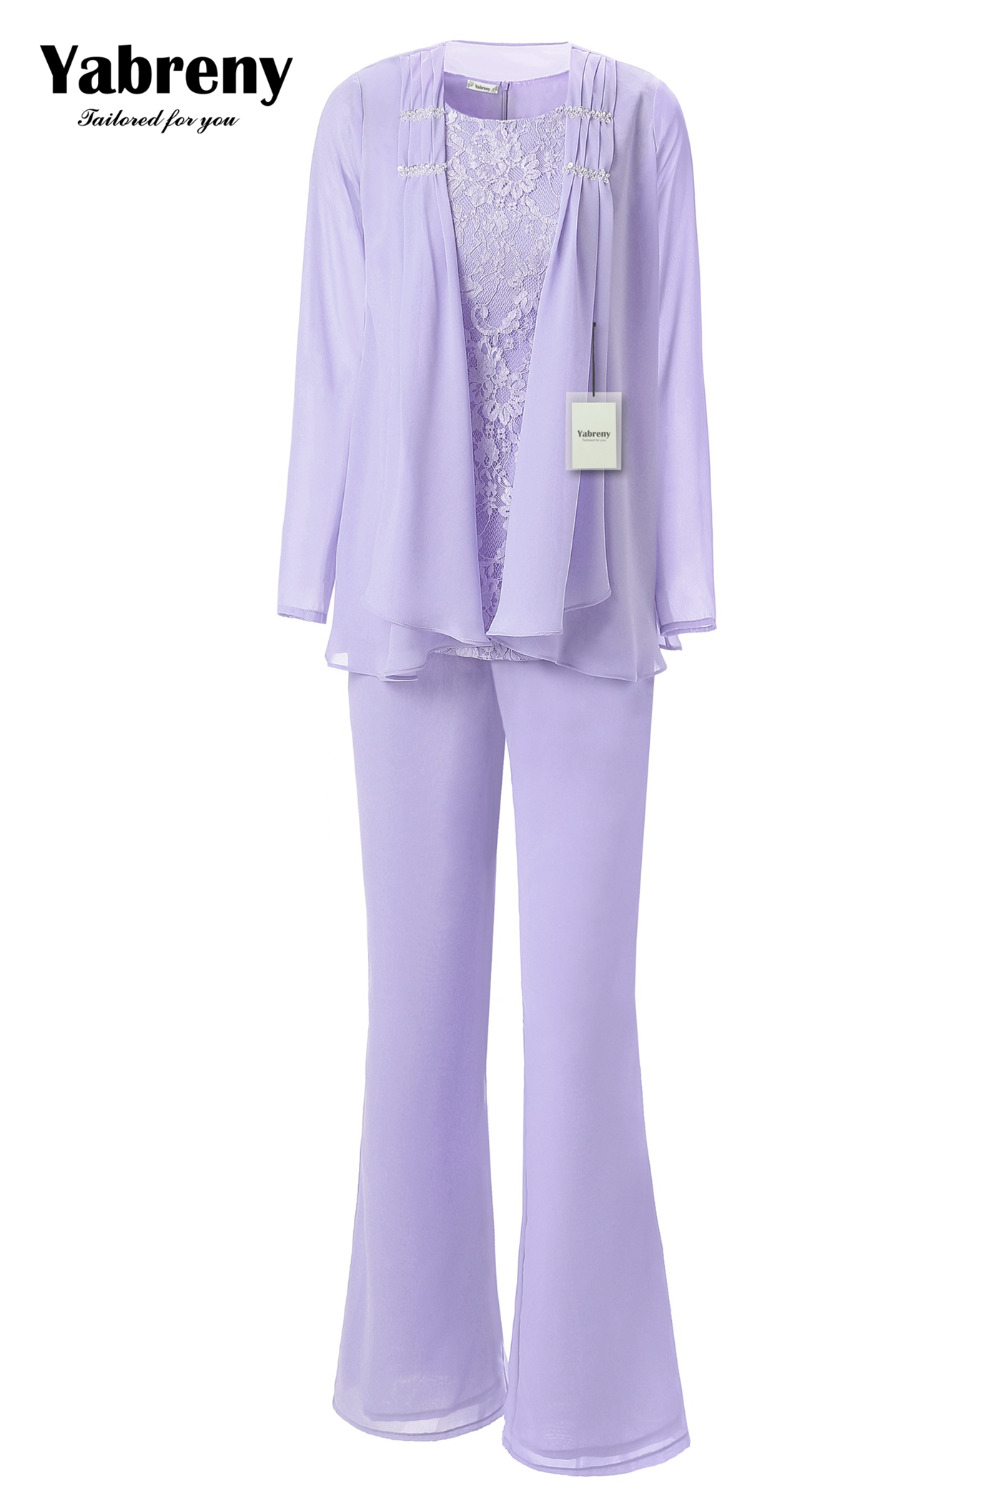 Yabreny Elegant Mother of the Bride Pants suit Lavender Chiffon Outfit for Special occasion MT001704-2